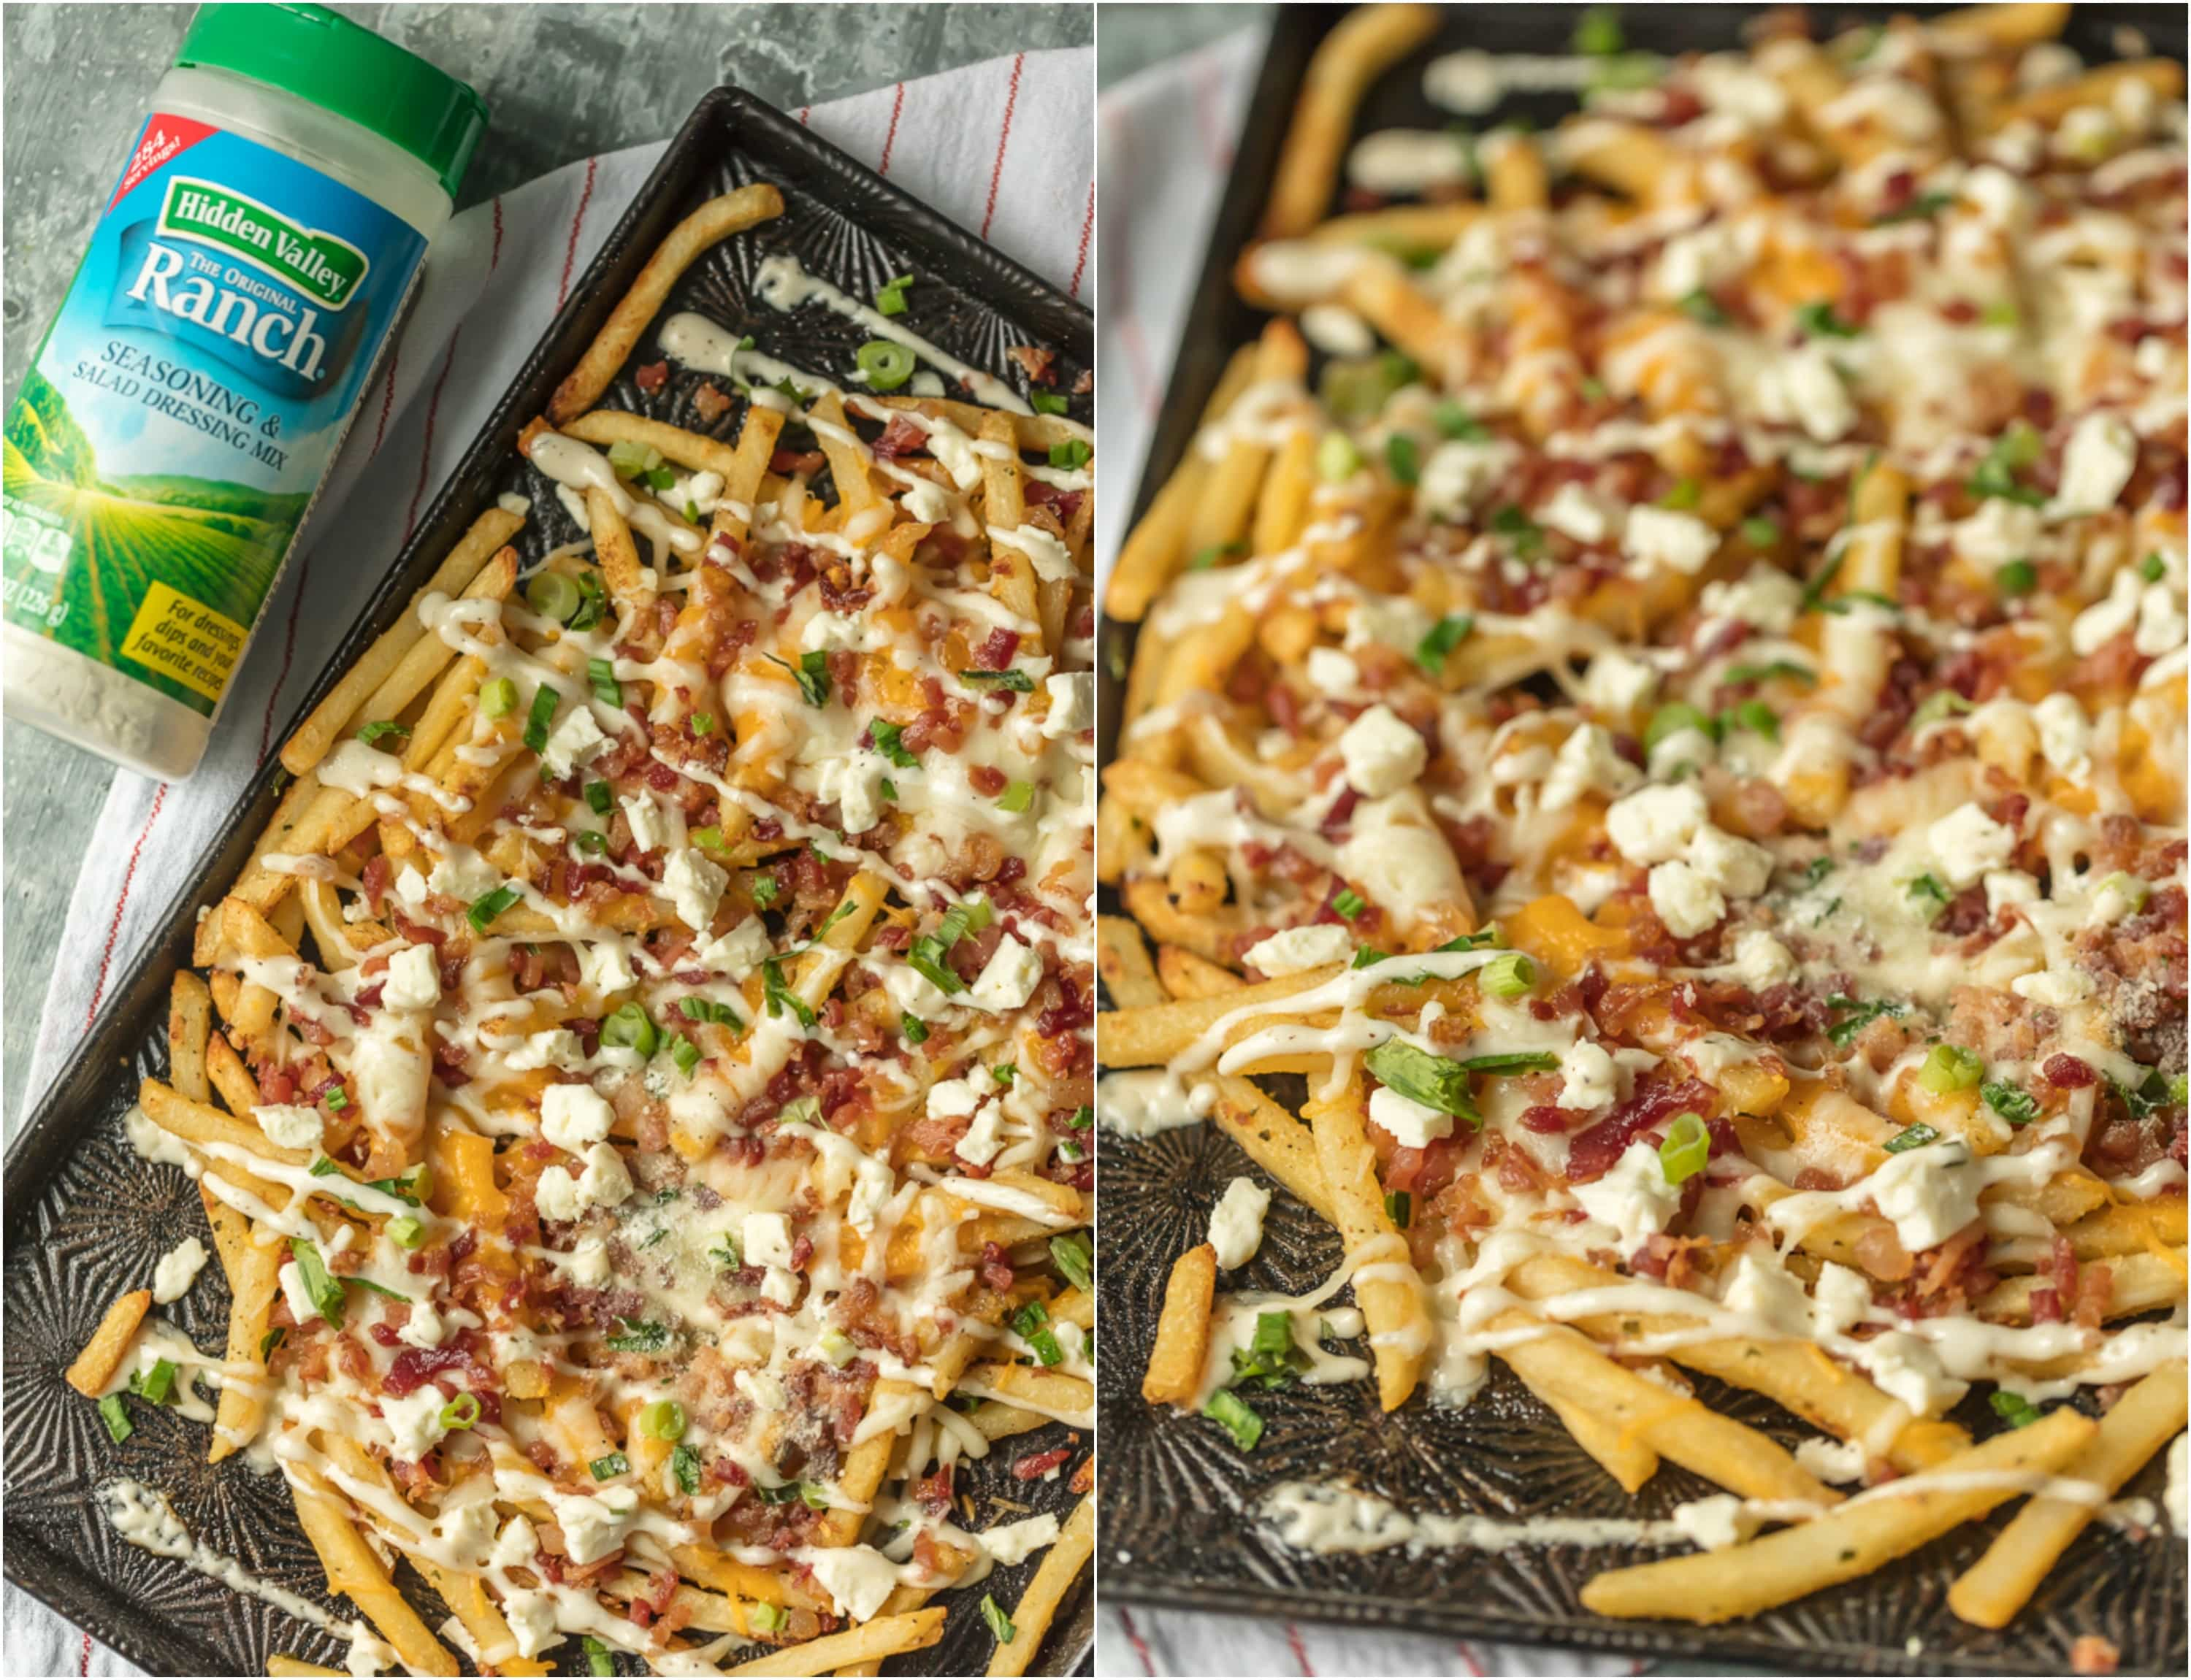 Bacon Cheese Fries with Ranch are my  go-to party food. This Cheese Fries Recipe is sure to make game day easy and delicious! This easy and fun appetizer takes crispy fries and tops them with ranch seasoning, bacon, cheddar, mozzarella, and feta. 3 Cheese Fries with Bacon and Ranch for the WIN!